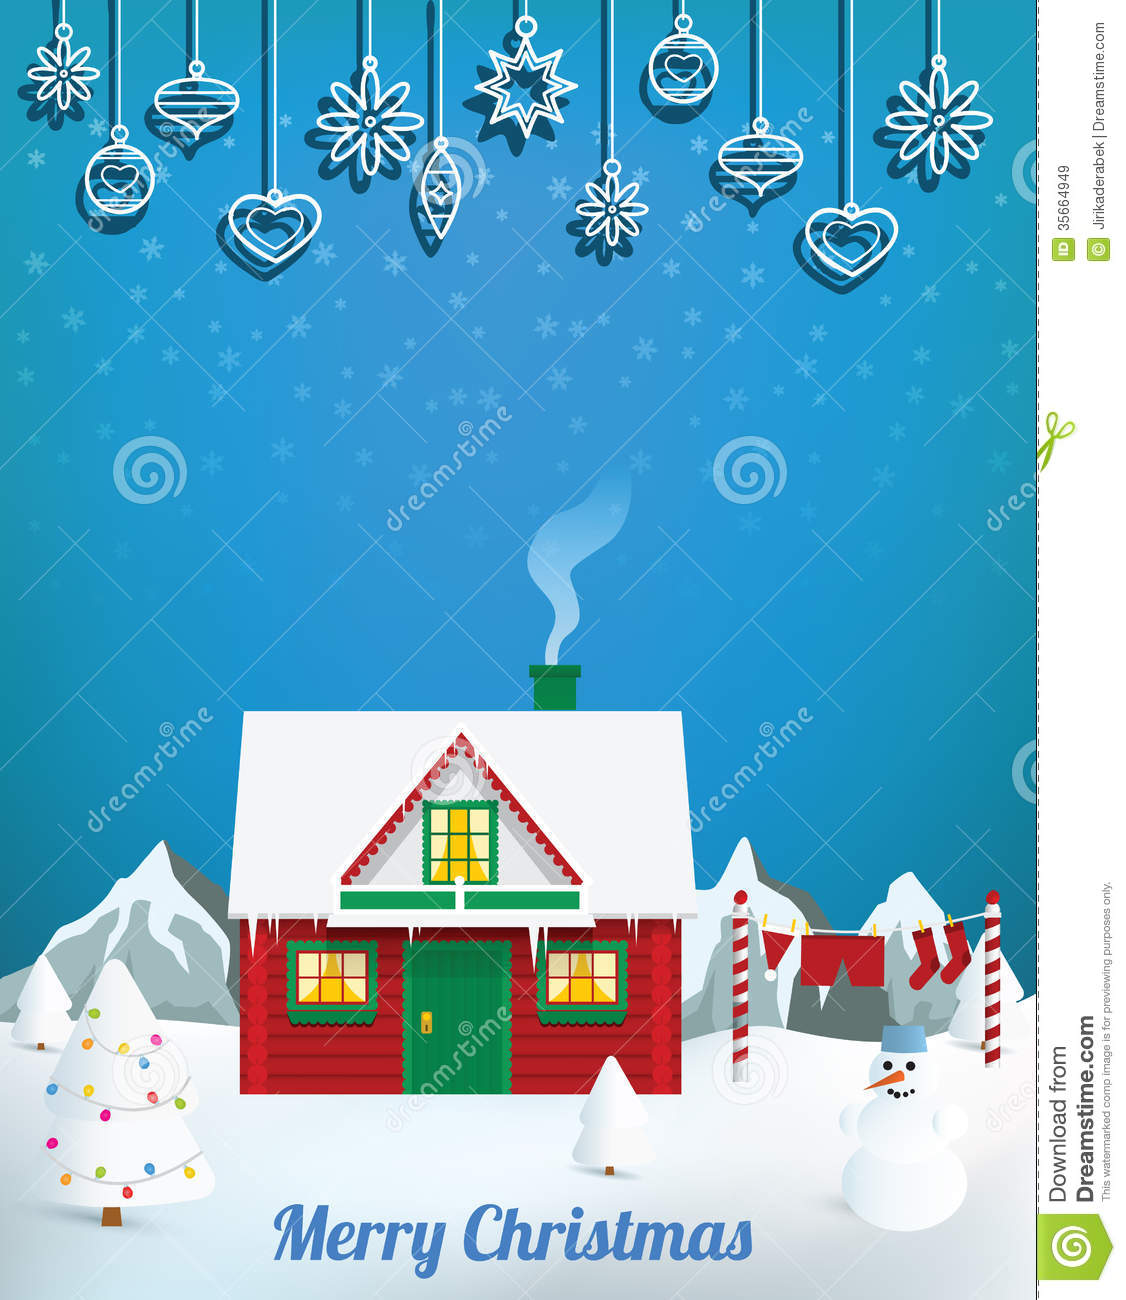 santa180s house royalty free stock images image 35664949